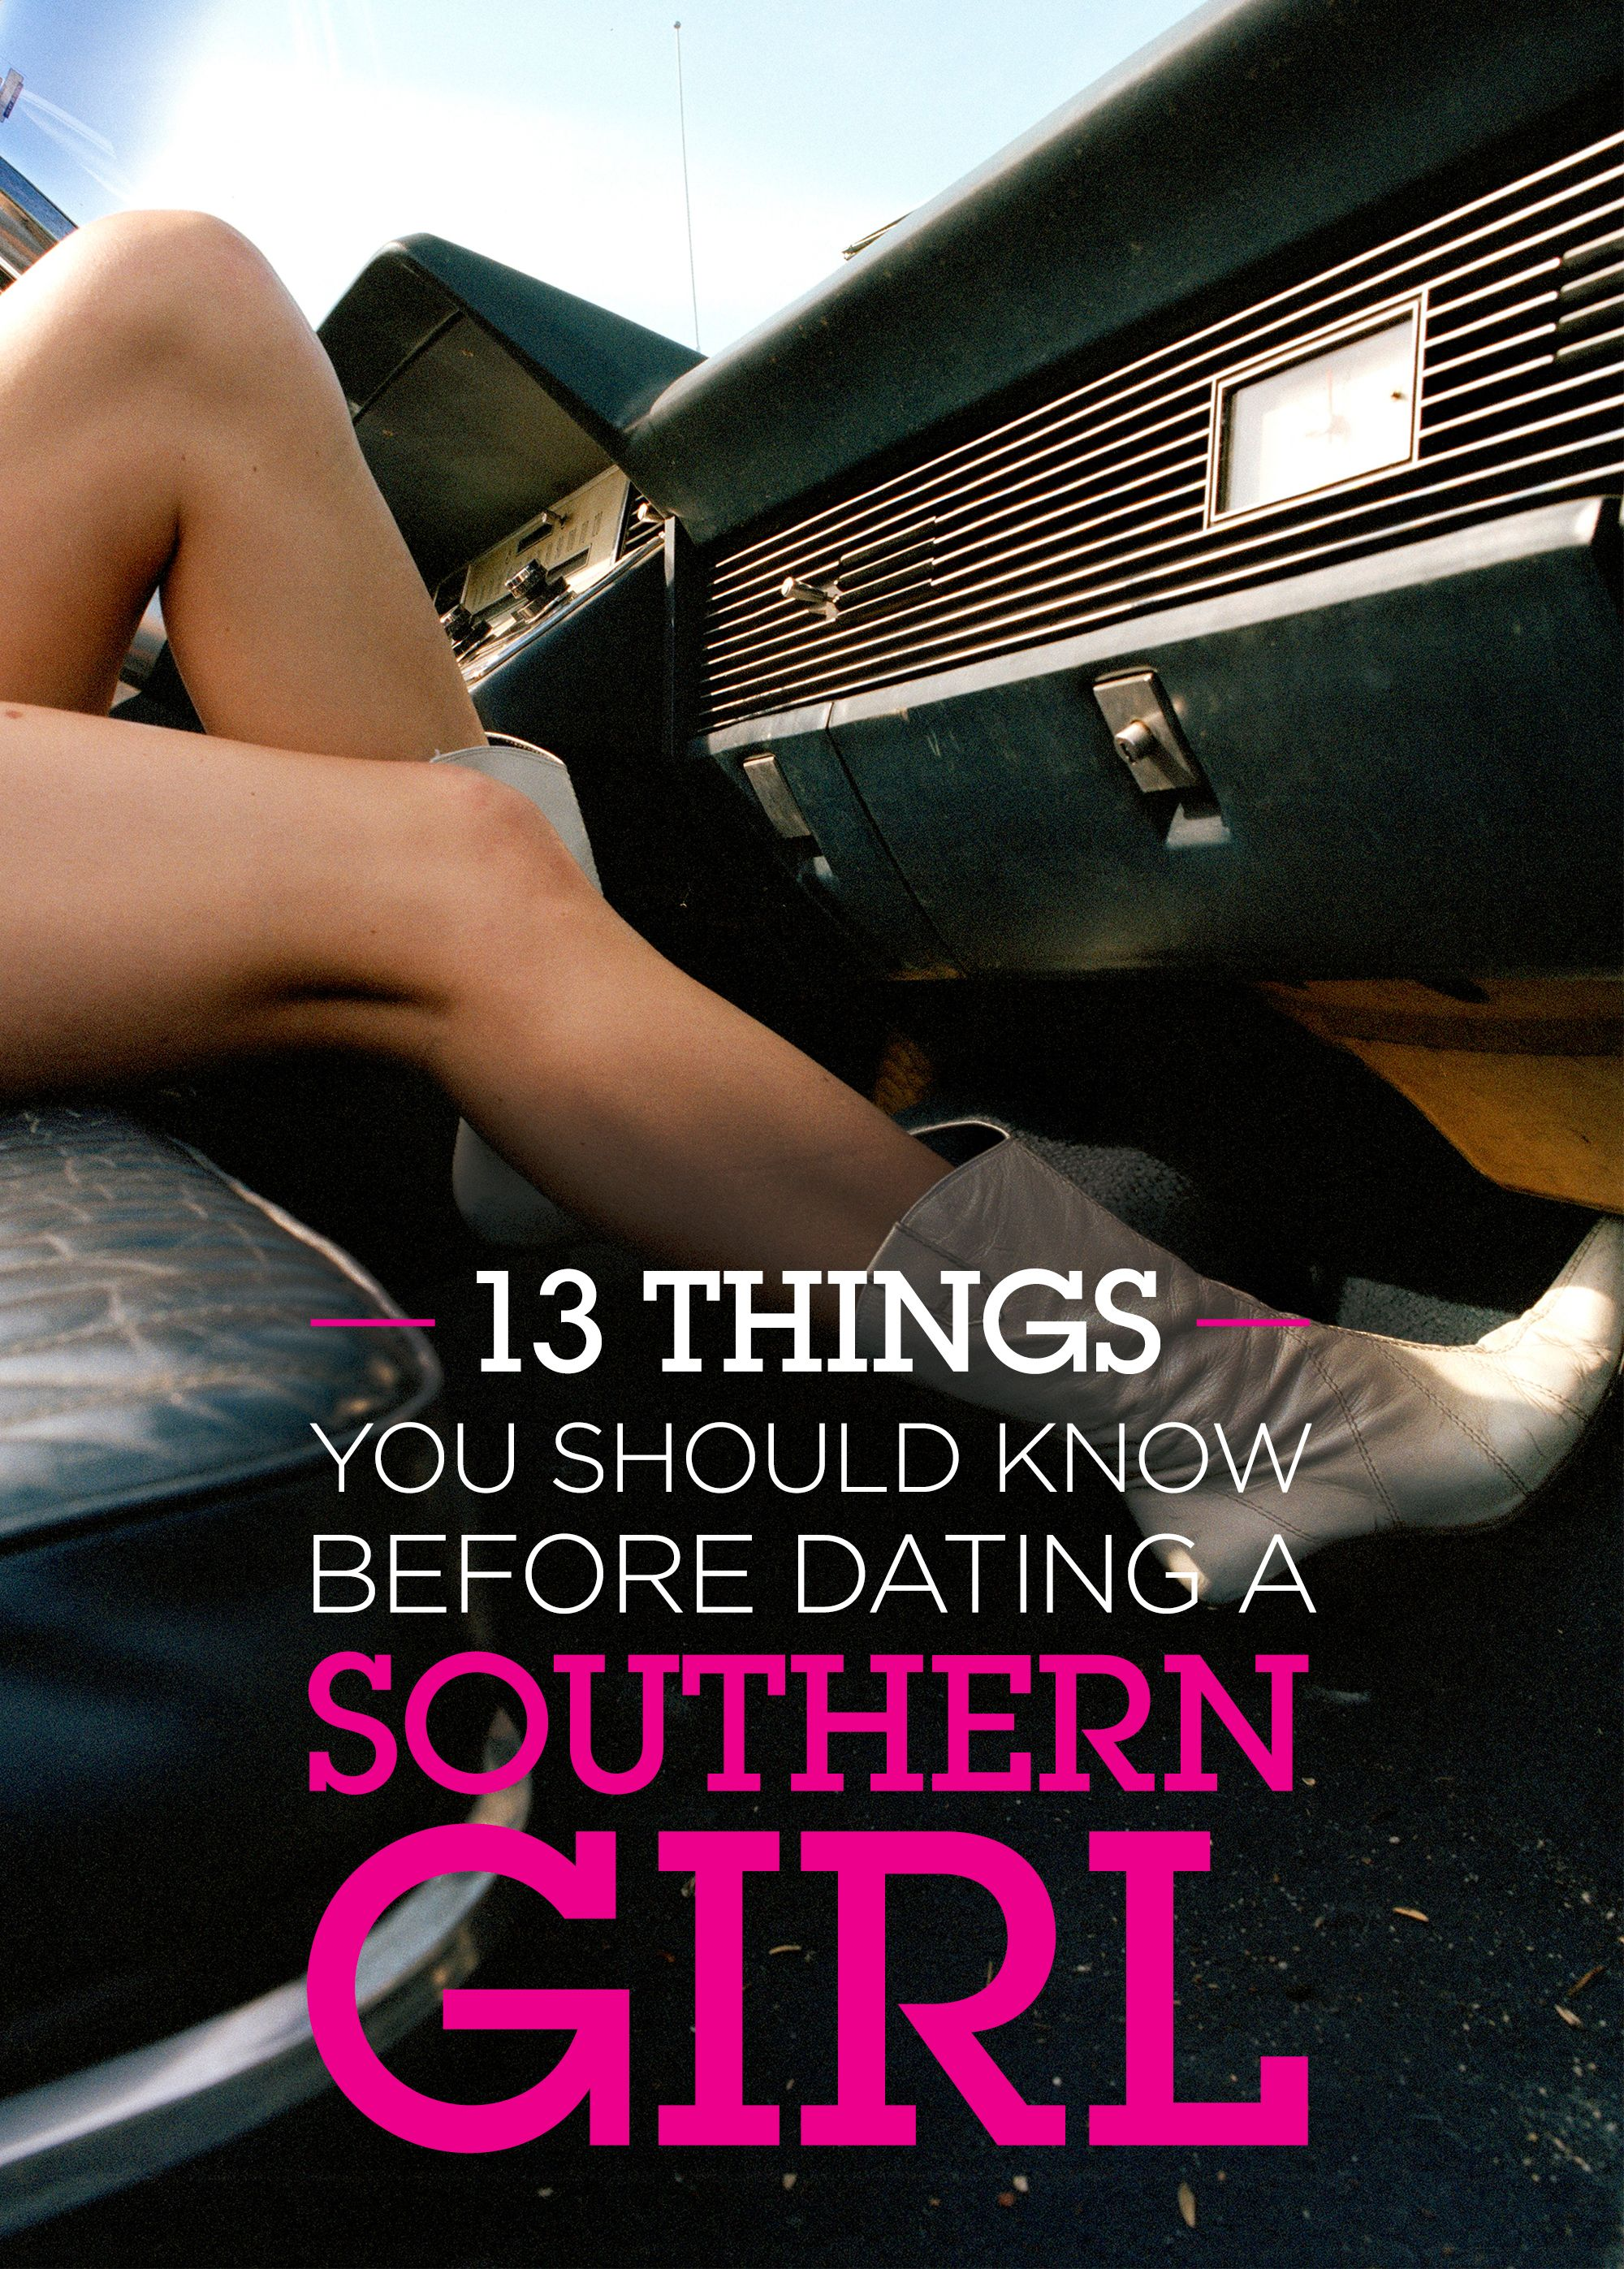 Something you should know before dating a girl who travels